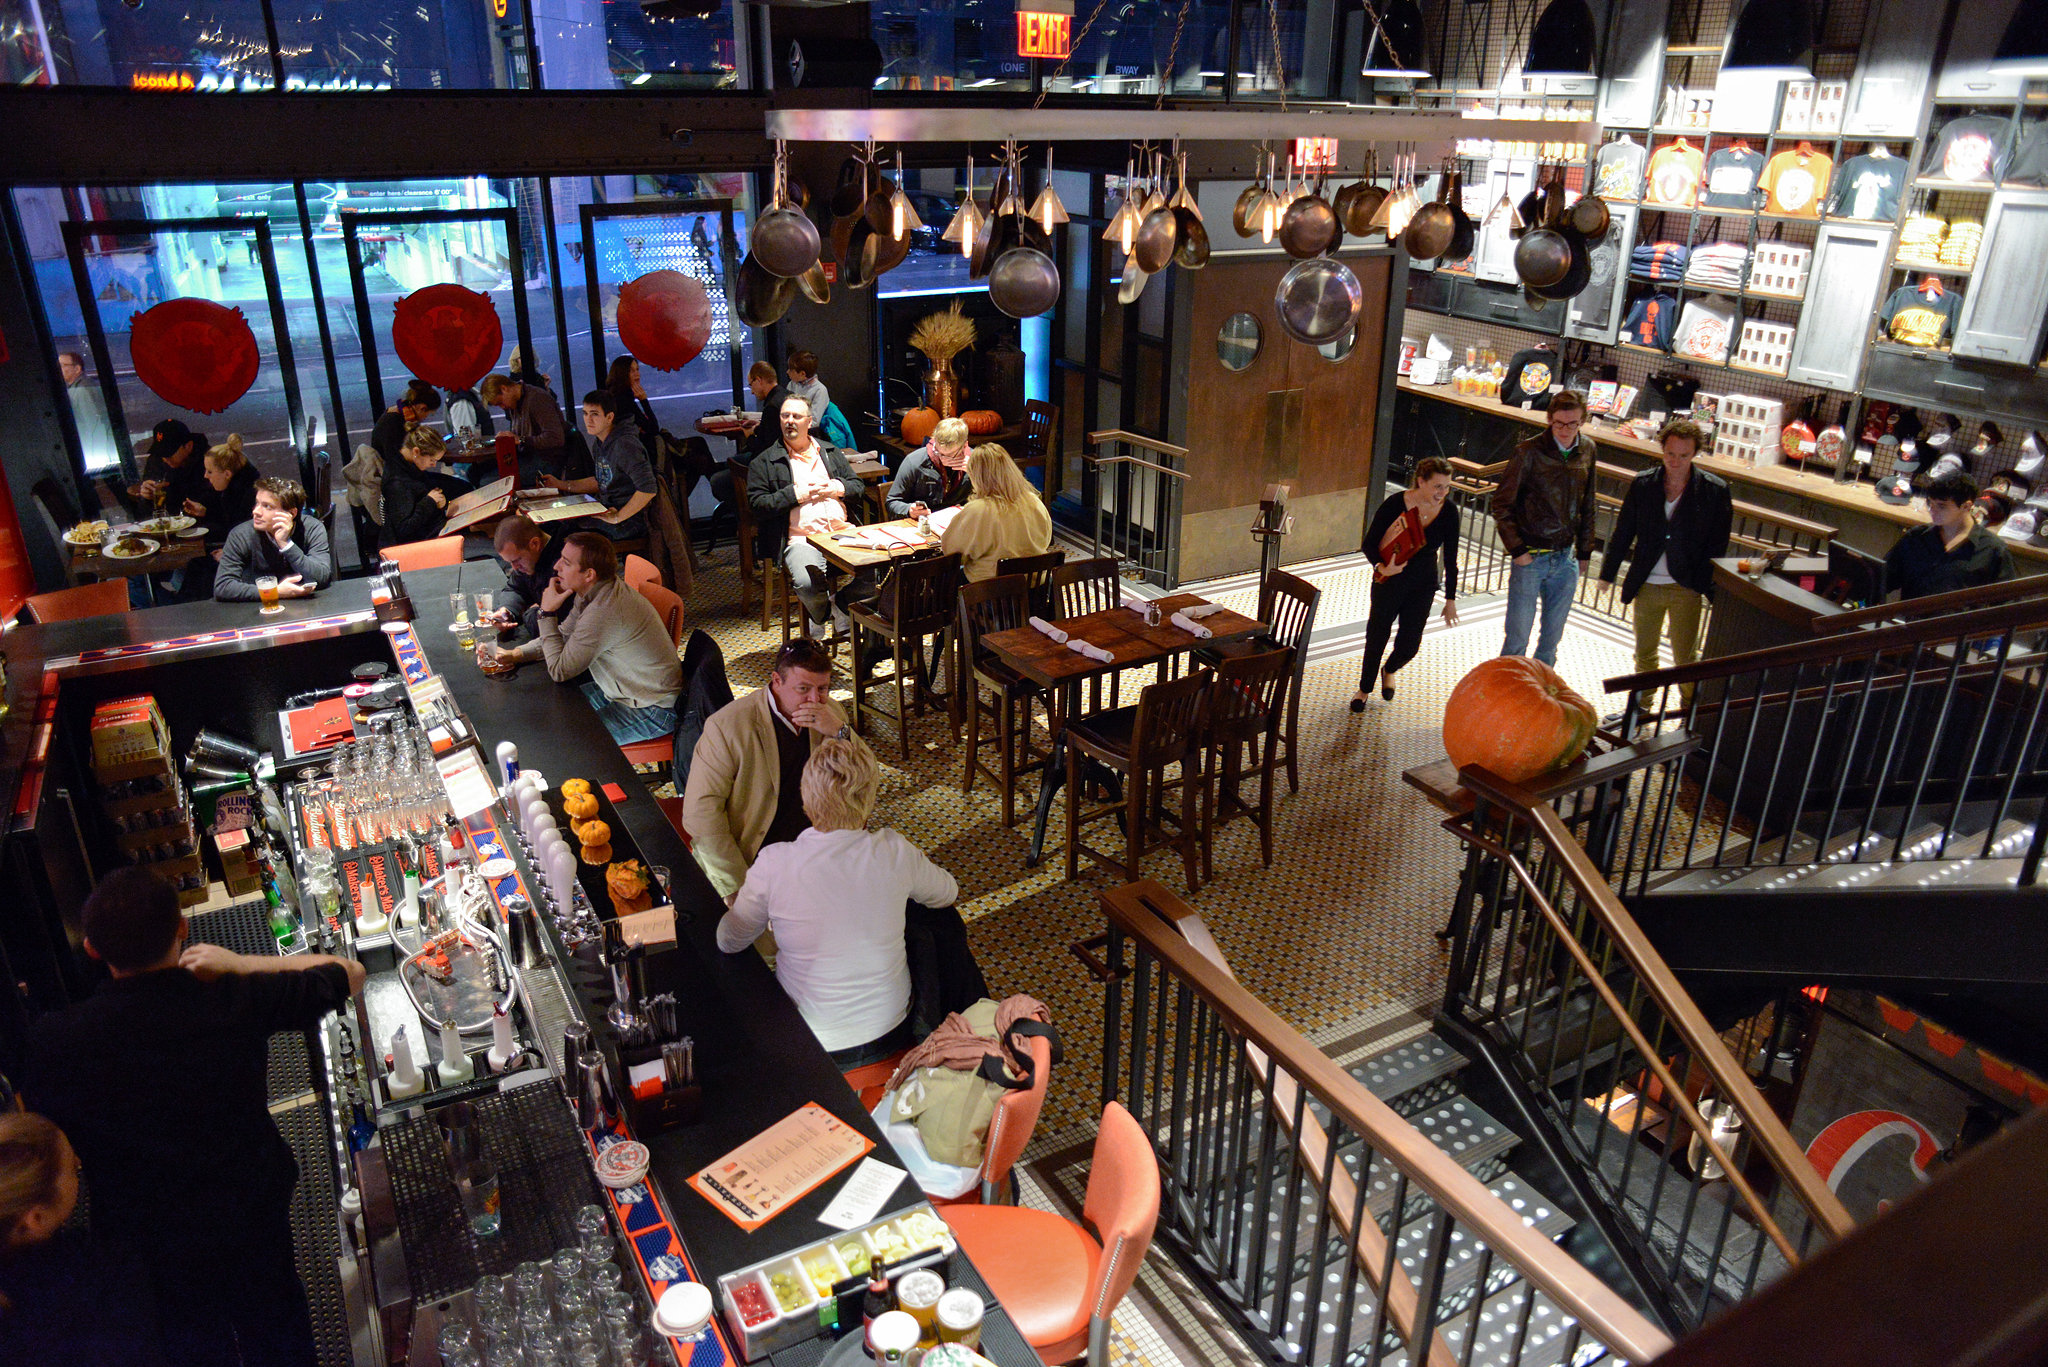 Restaurant Review Guys American Kitchen  Bar in Times